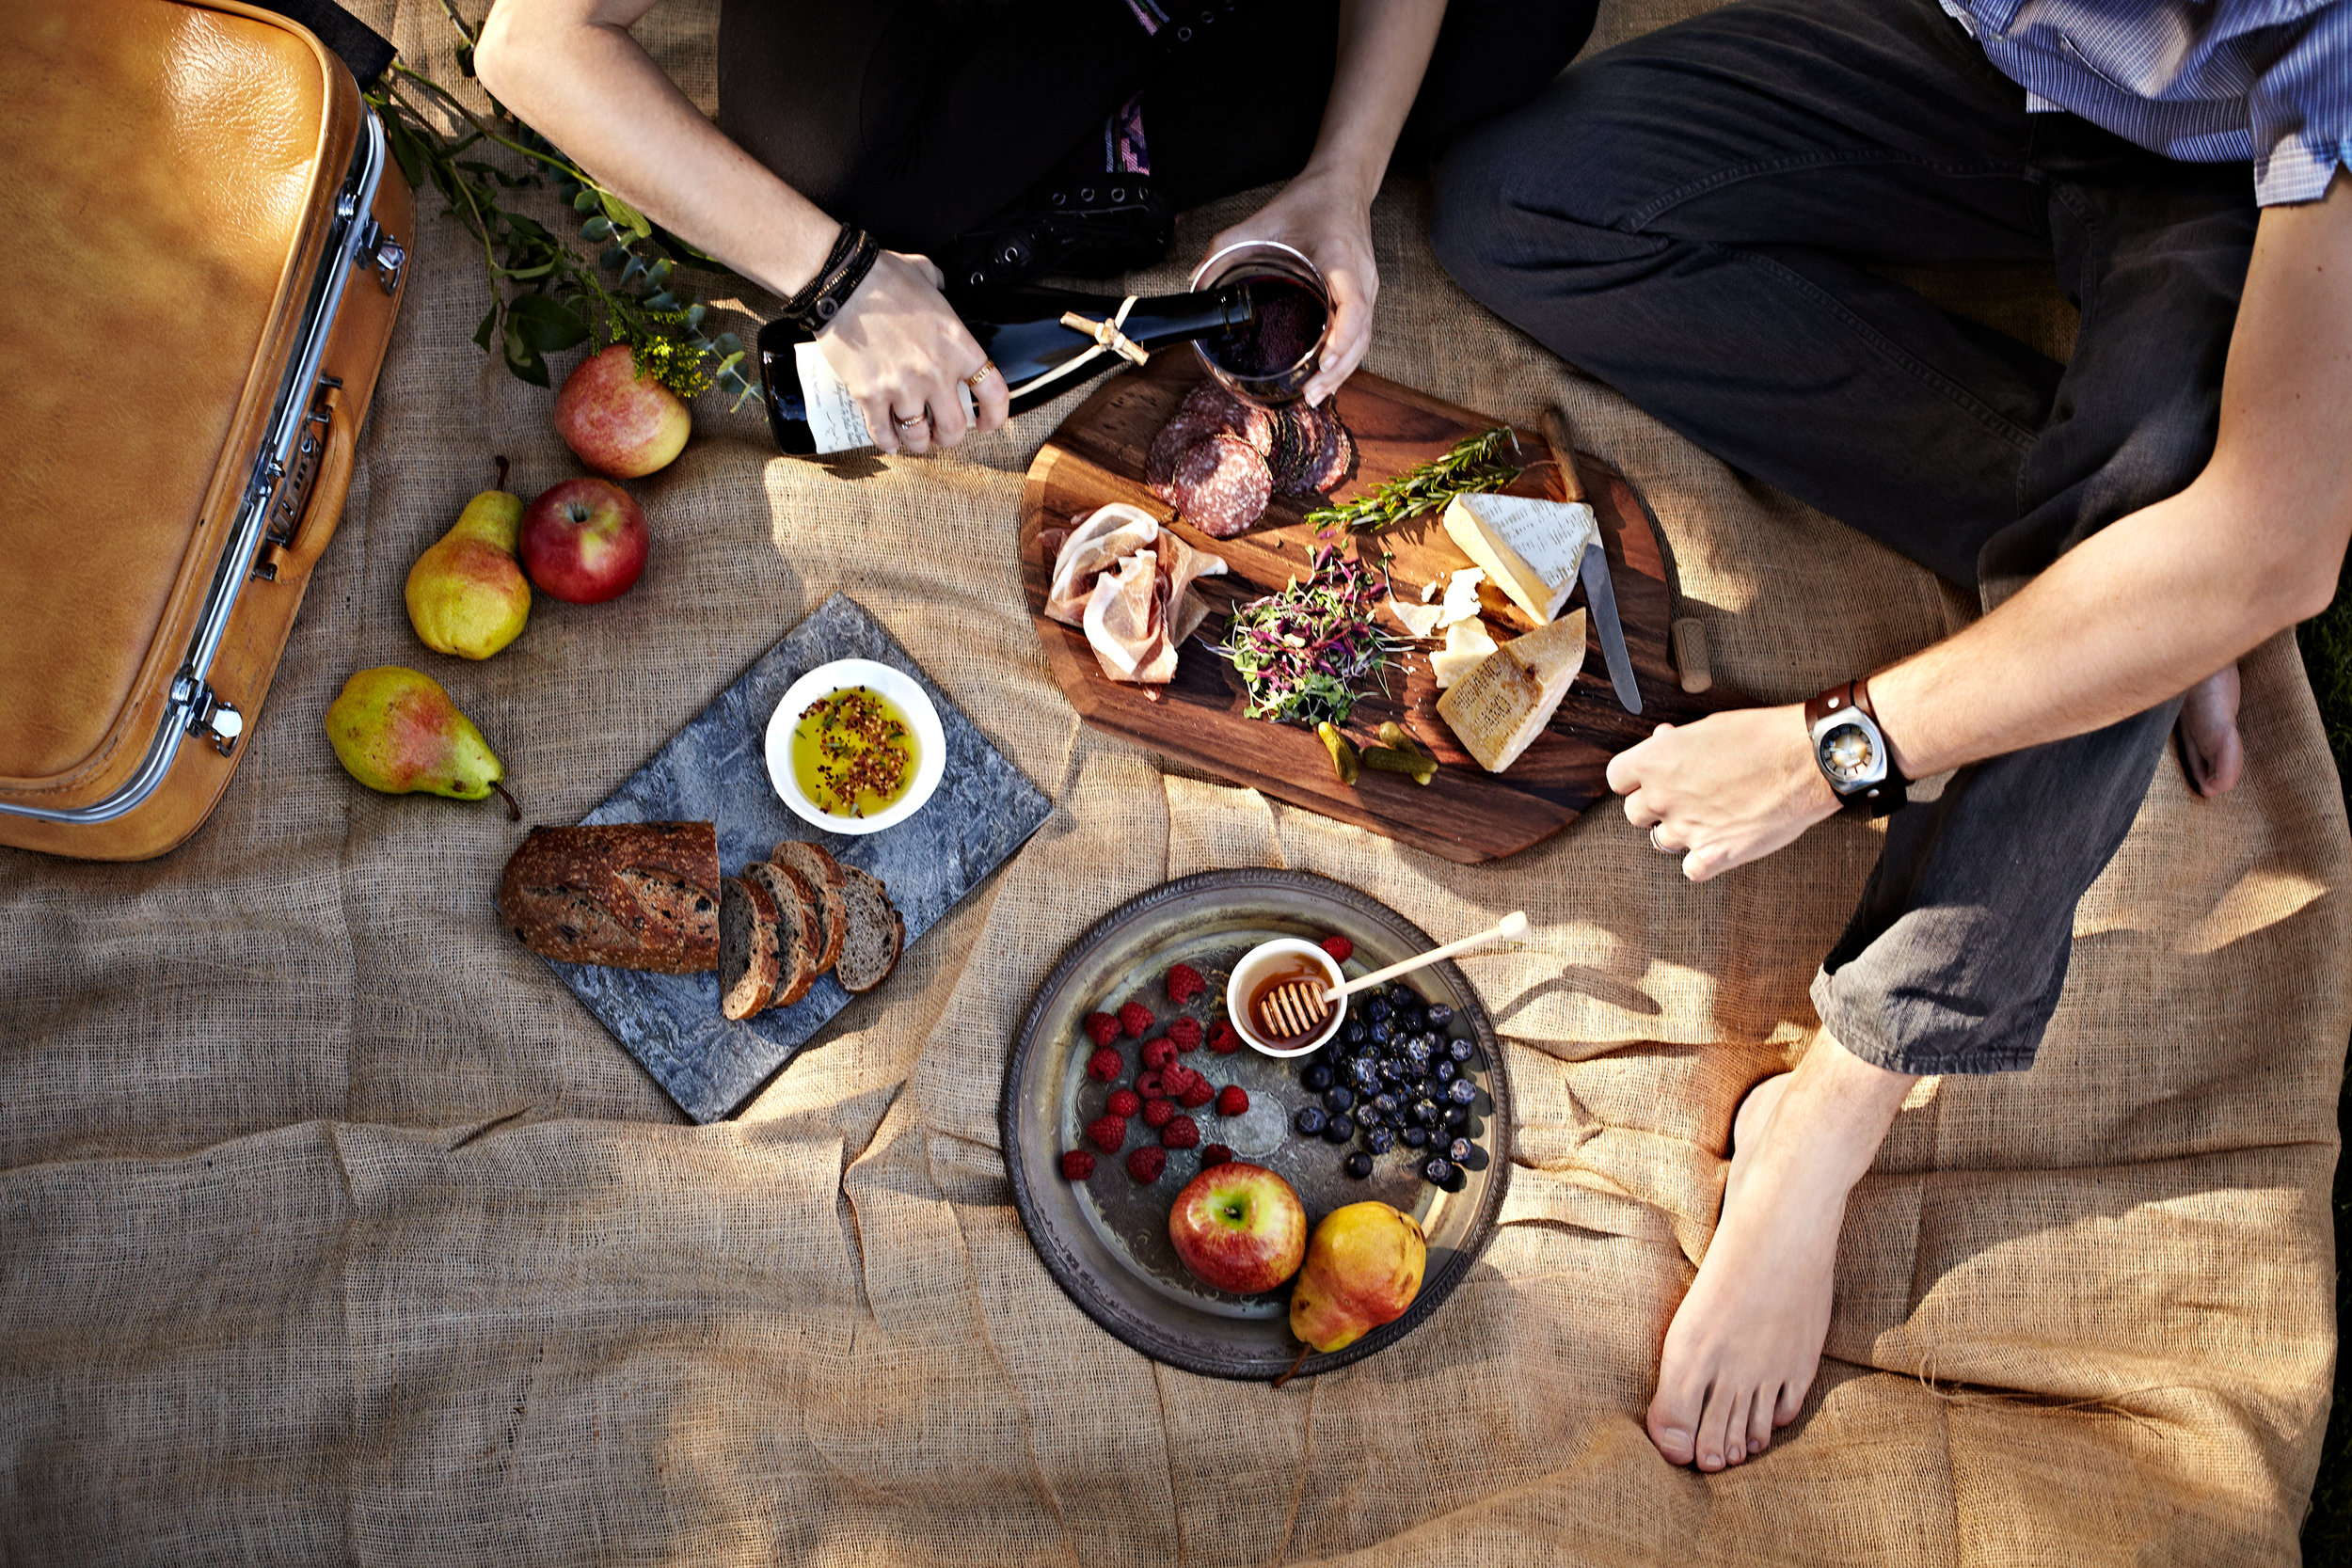 Couple having a Spanish picnic with dappled light, charcuterie board, fruit, and wine